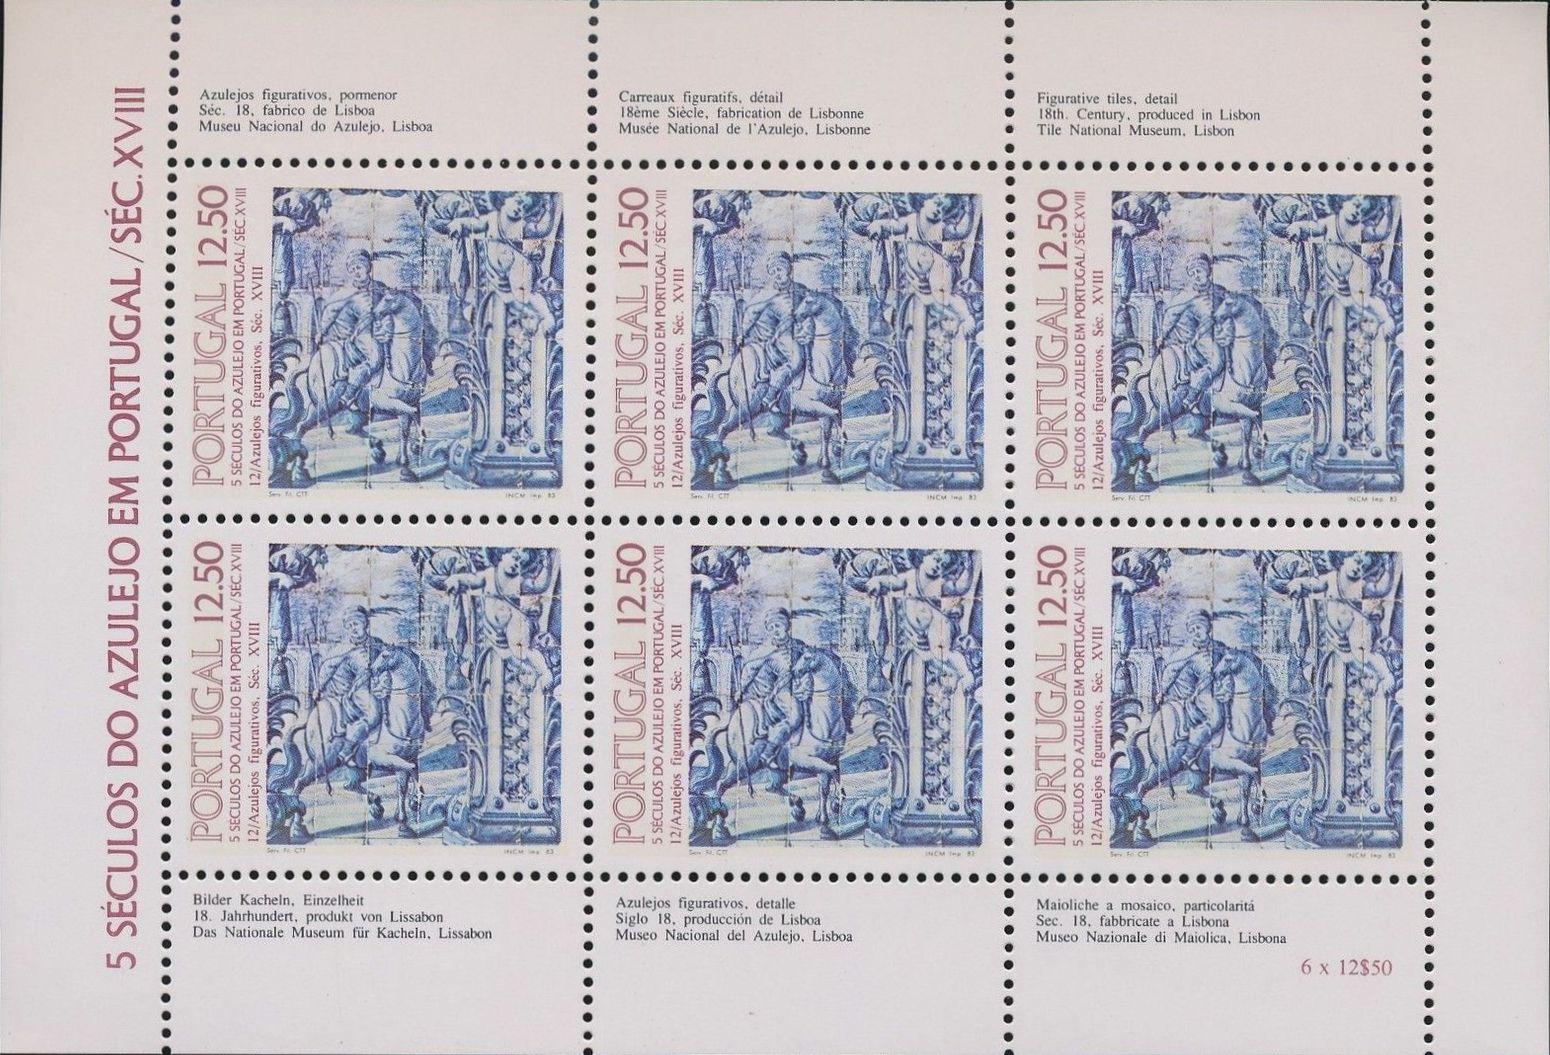 Portugal 1983 500th Anniversary of Tiles in Portugal (12th Group)